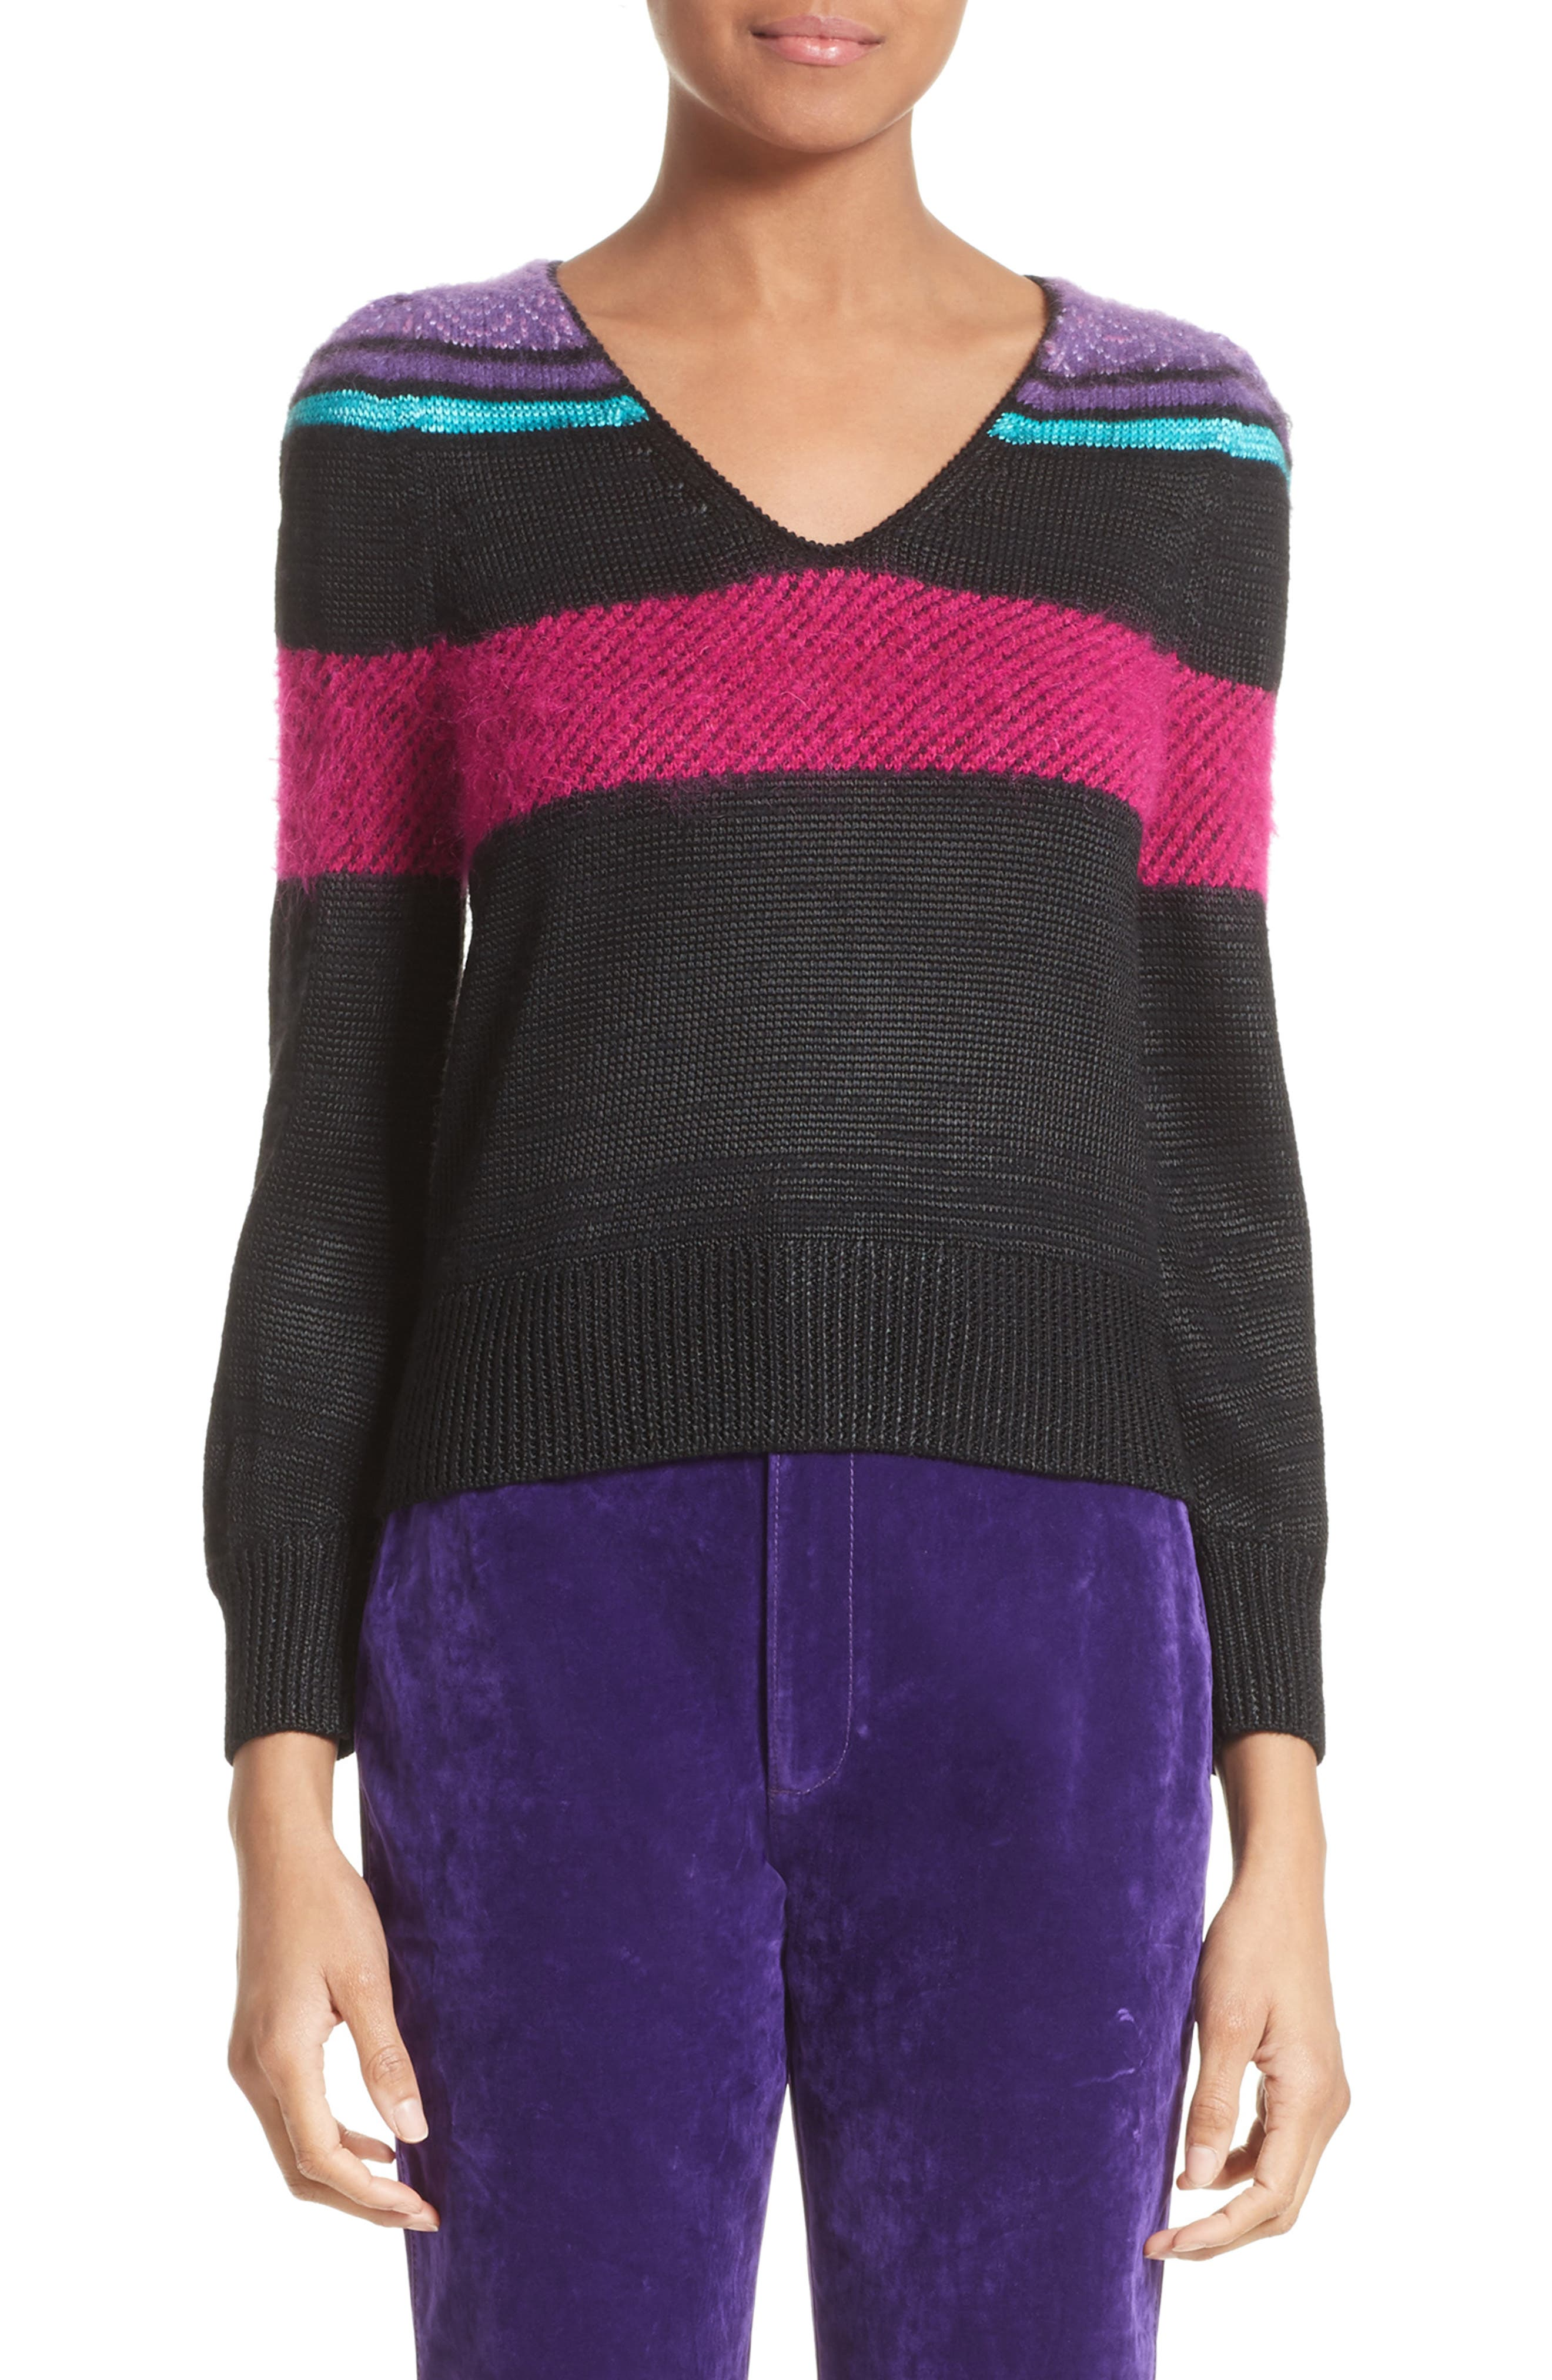 Alternate Image 1 Selected - MARC JACOBS '80s Stripe Knit Sweater